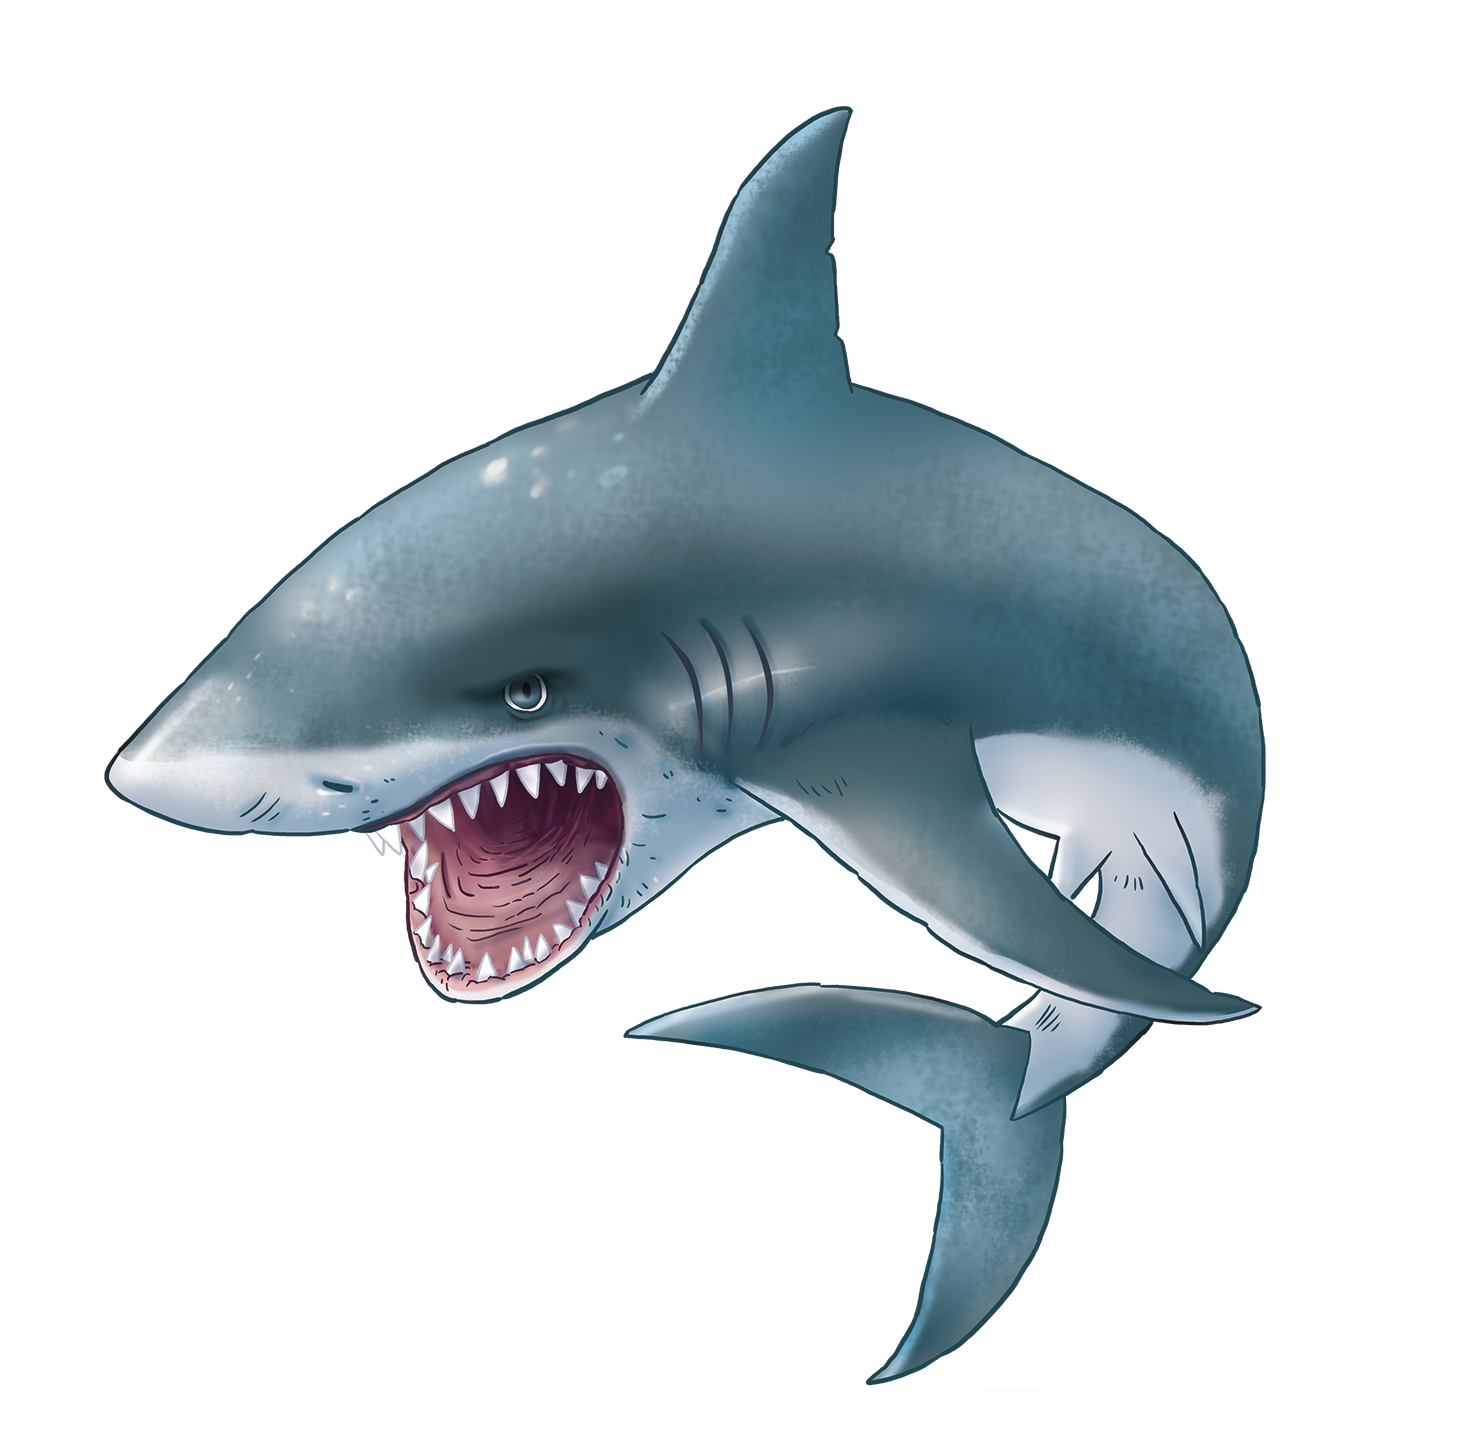 Clipart shark tail. Collection of free elasmobranchiate